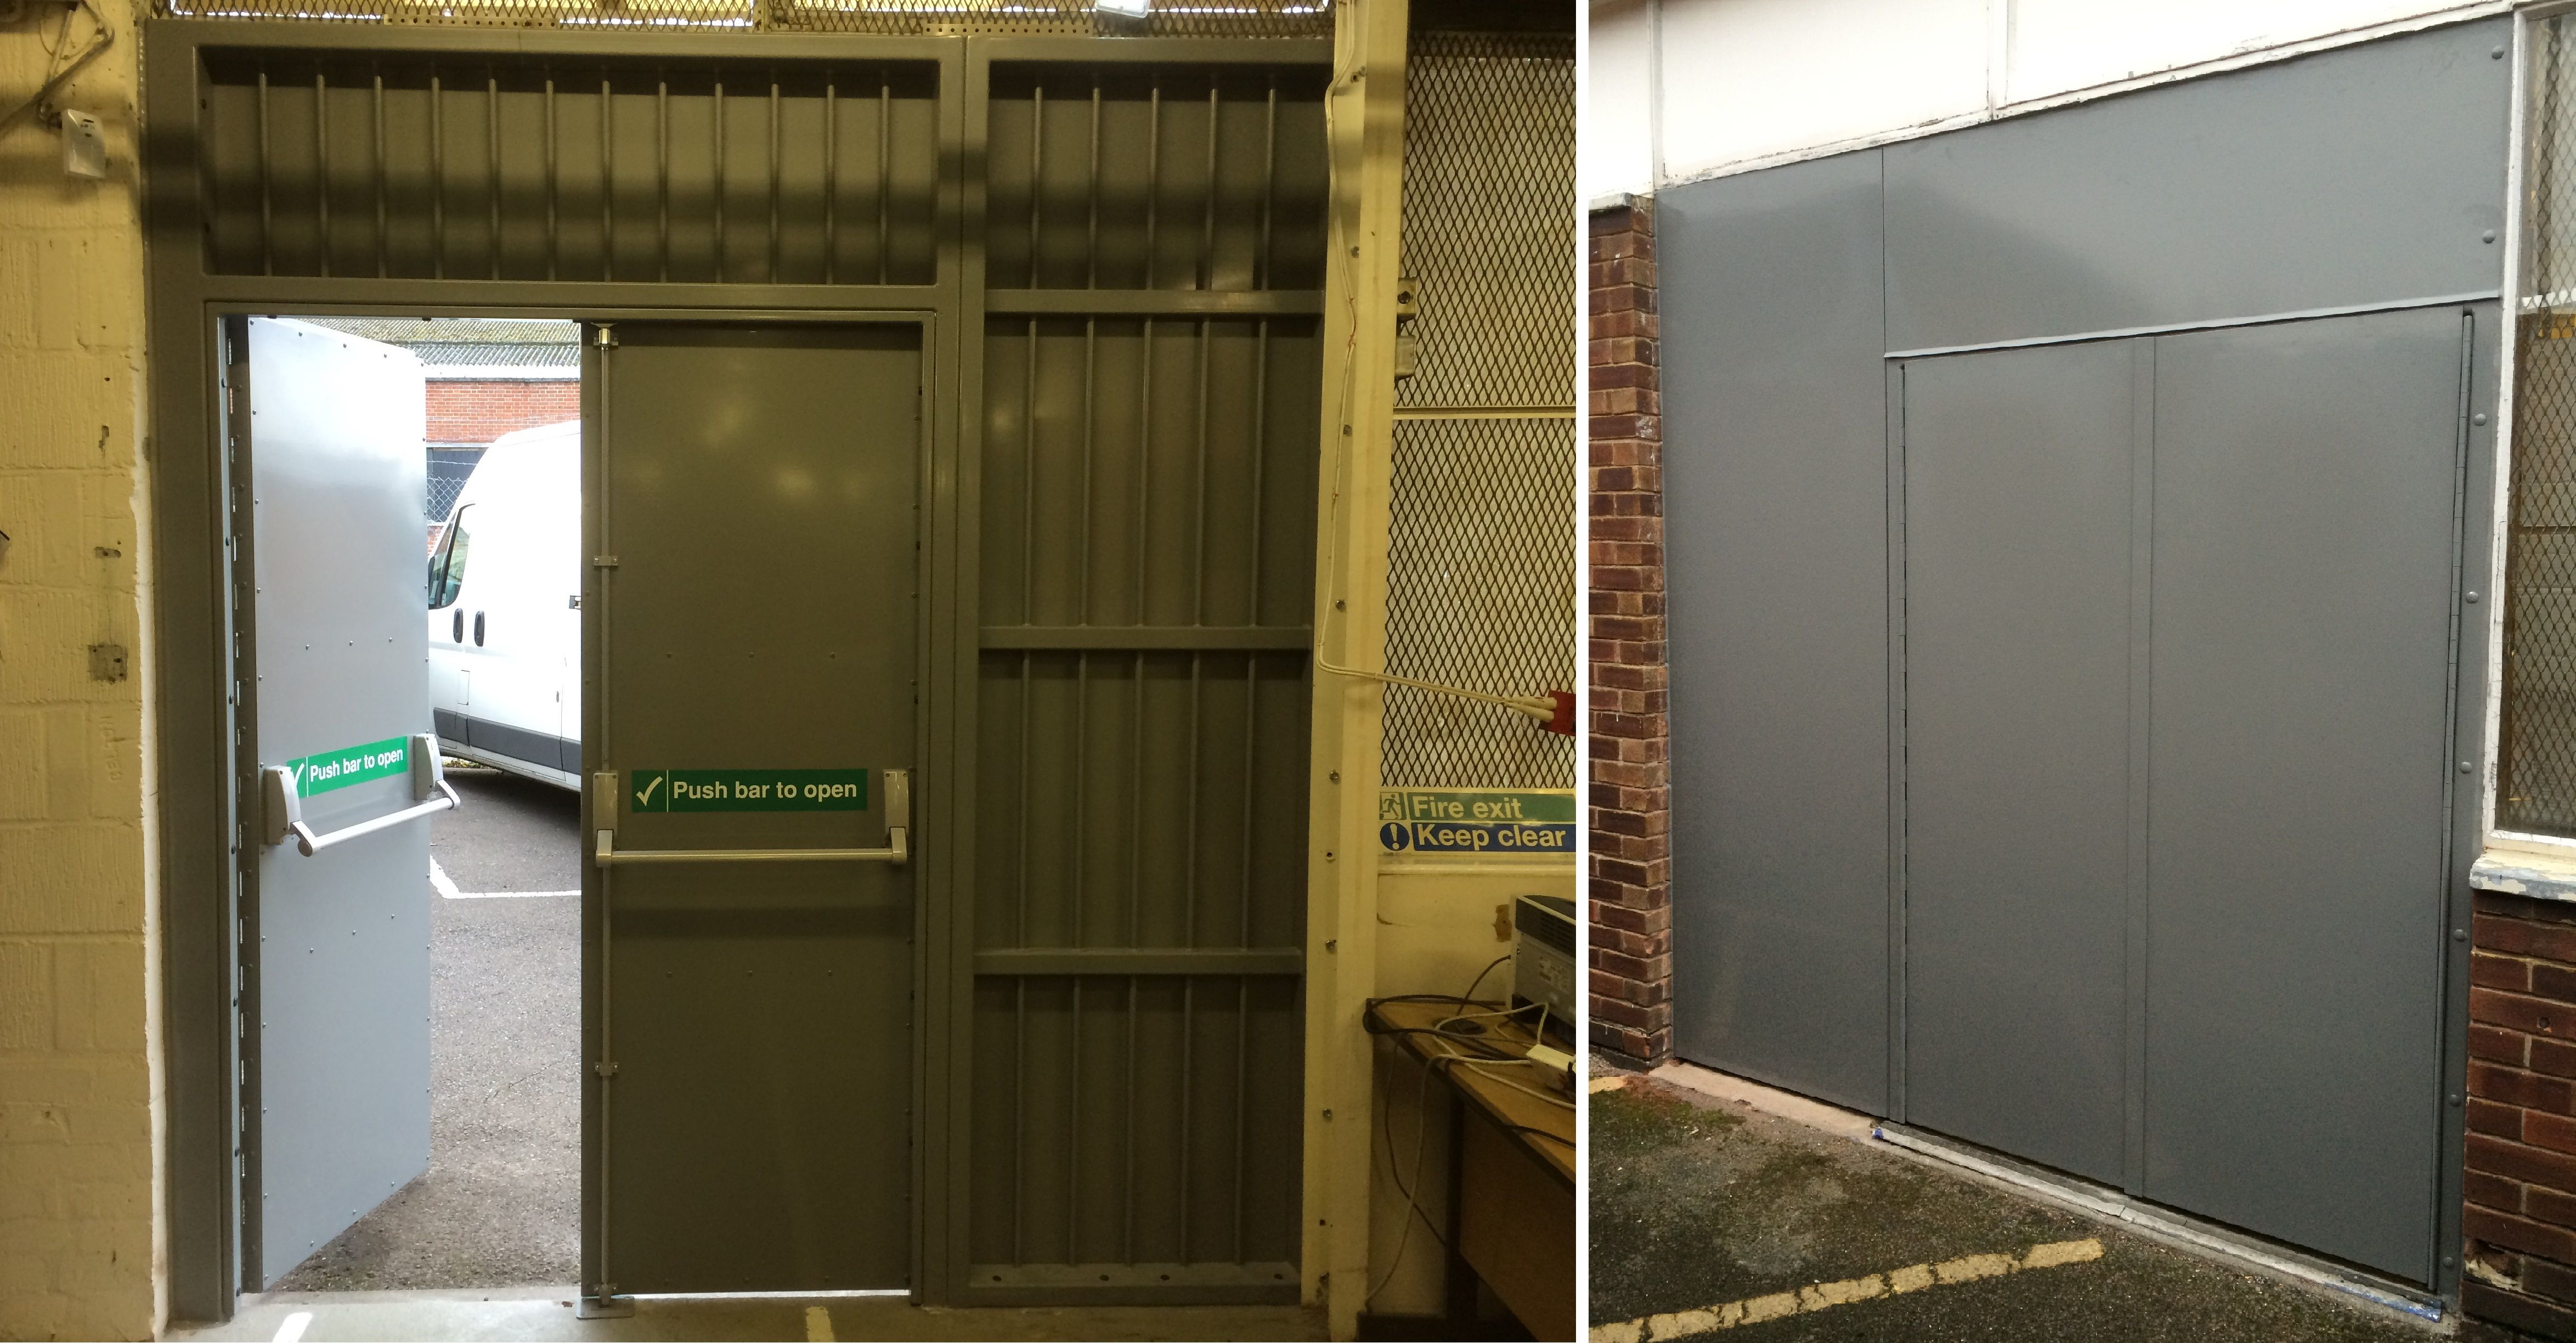 double fire exit security doors heavy duty fabricated construction with piano hinges emergency panic bars and top/side panels with welded round bars on ... & RSG8100 double fire exit security doors heavy duty fabricated ...